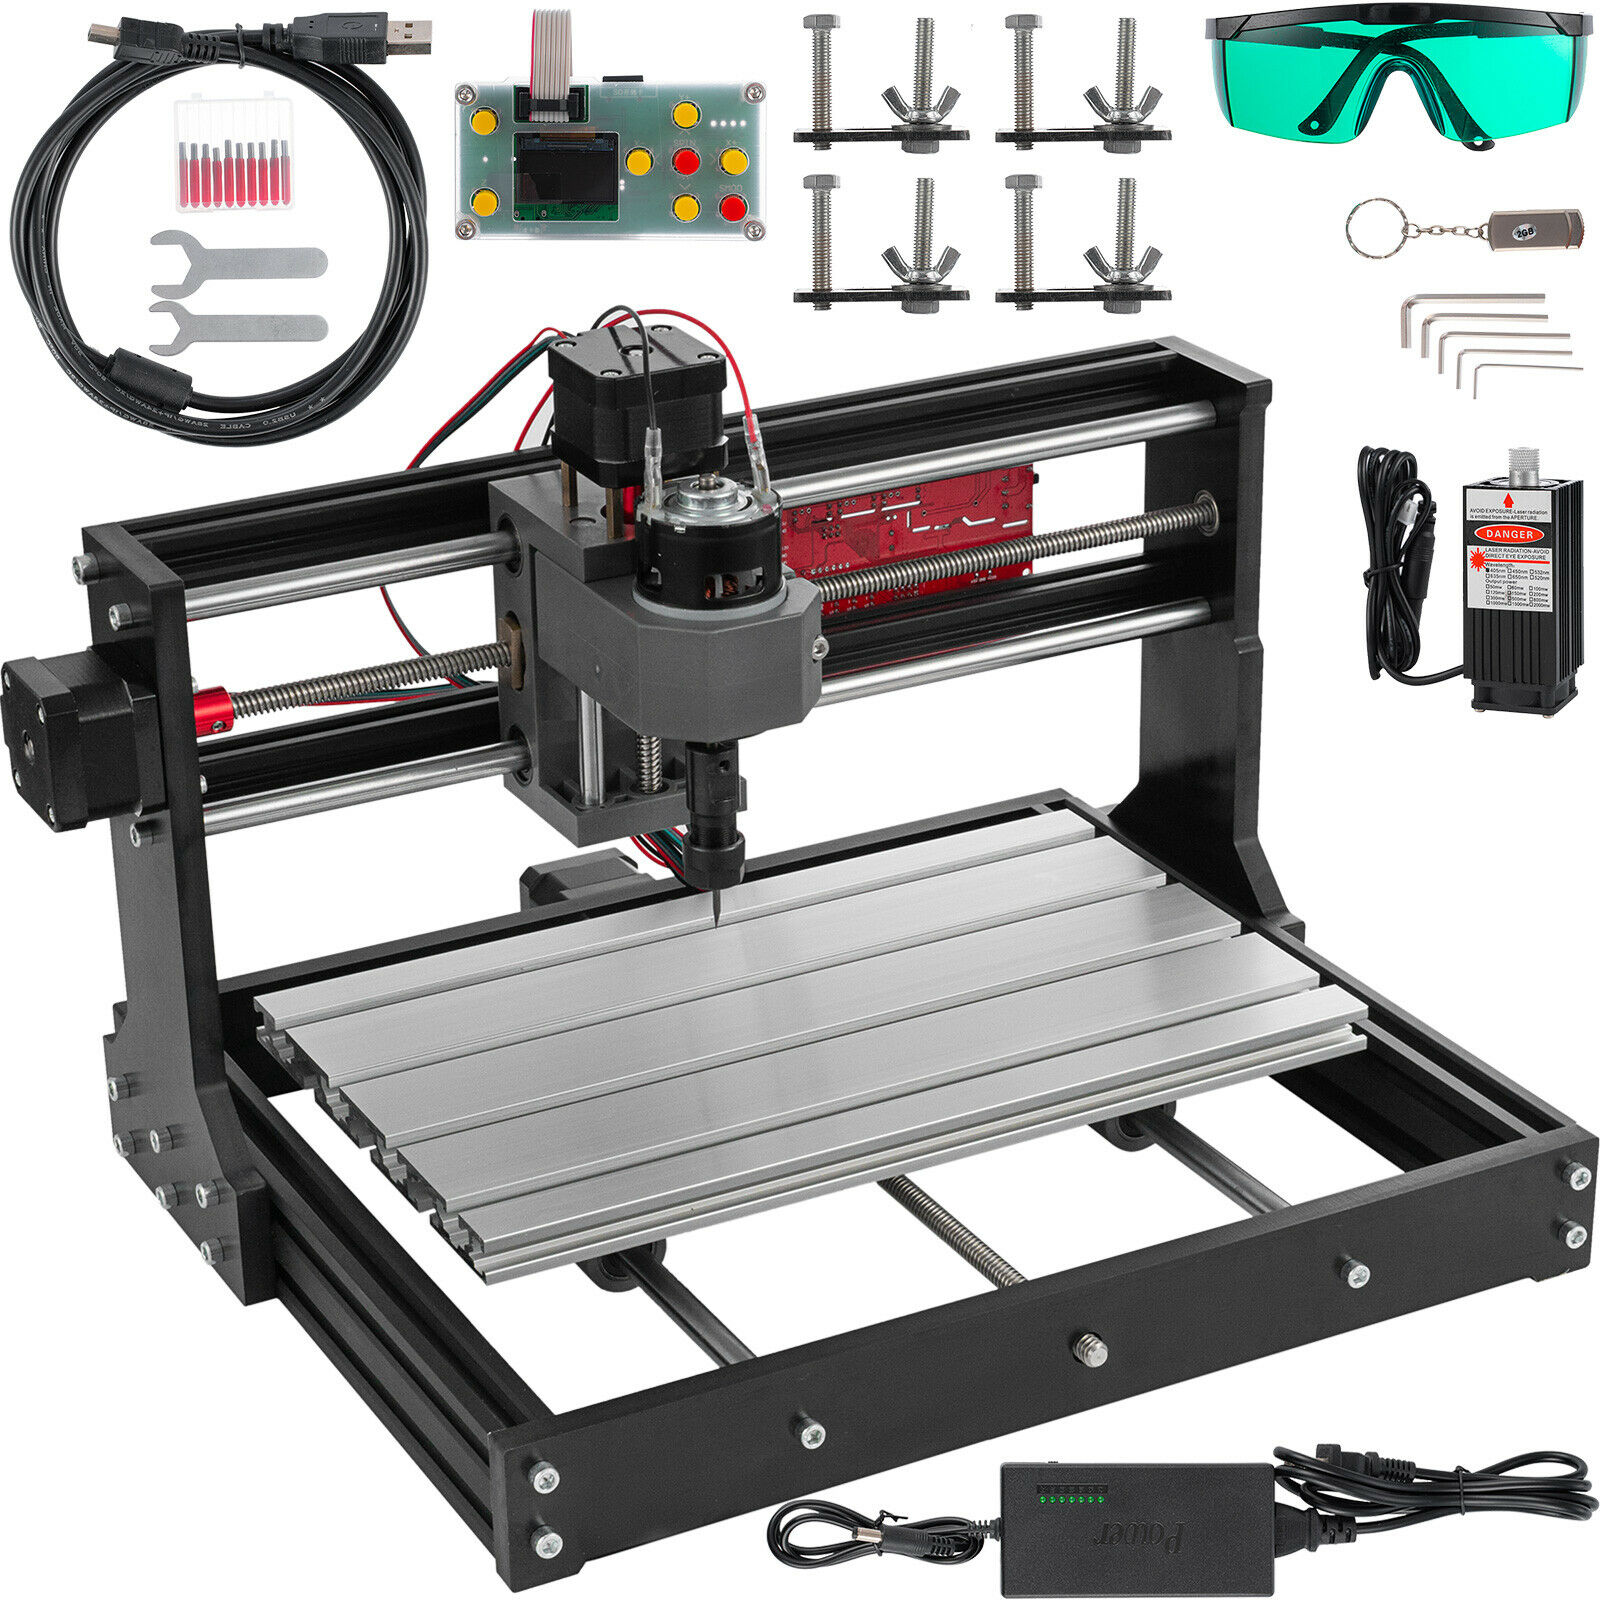 CNC 3018 PRO Laser Engraver Wood Milling Machine Router 3 Axis Engraving PCB PVC Wood DIY Mini Engraving Mill+5500mw Laser Head